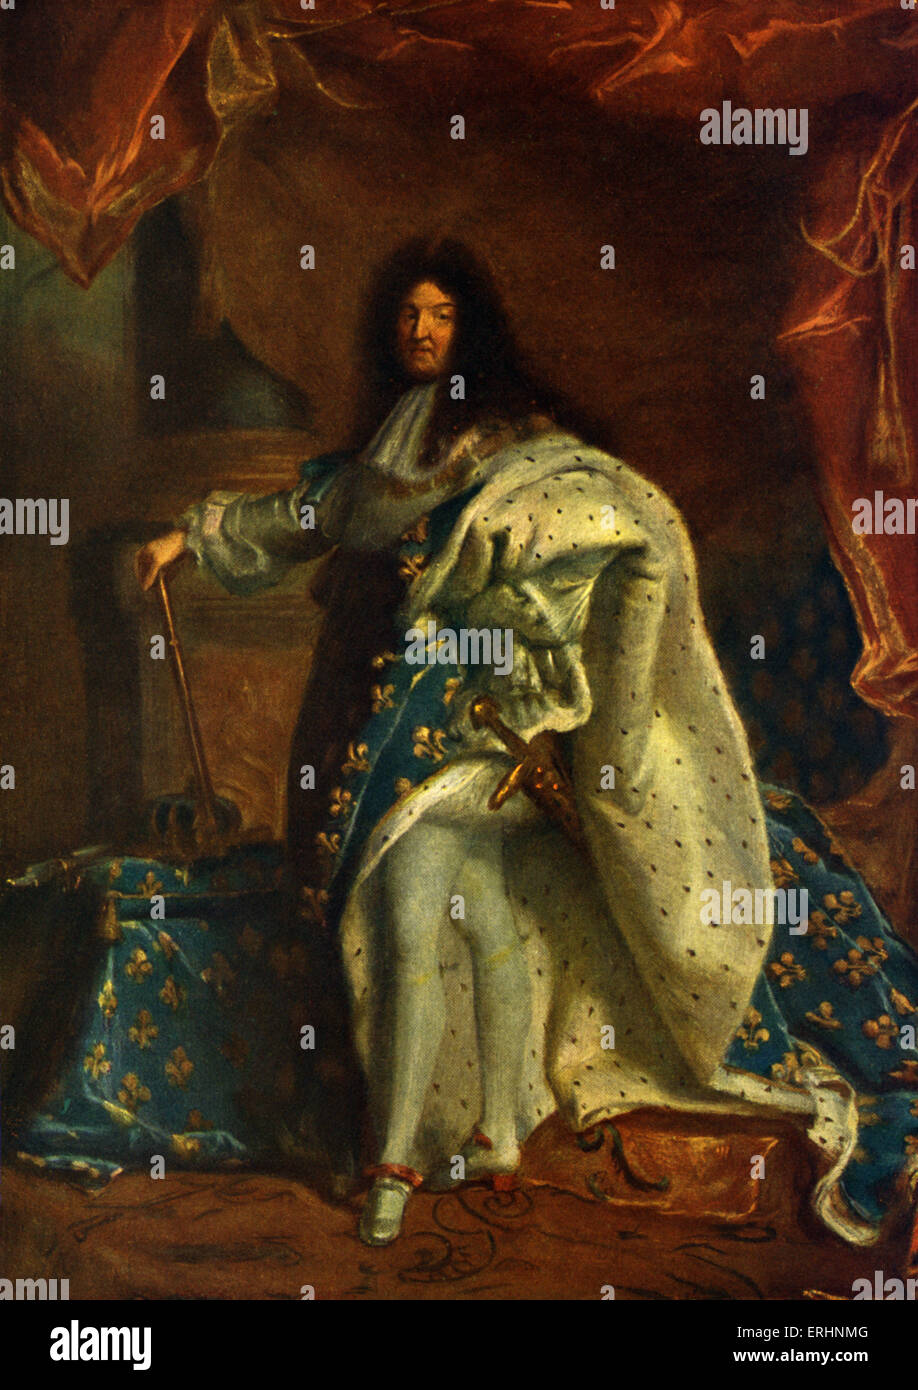 Louis XIV, King of France - after painting by Hyacinthe Rigaud, 1701. Original held at Louvre Museum, Paris, France. - Stock Image